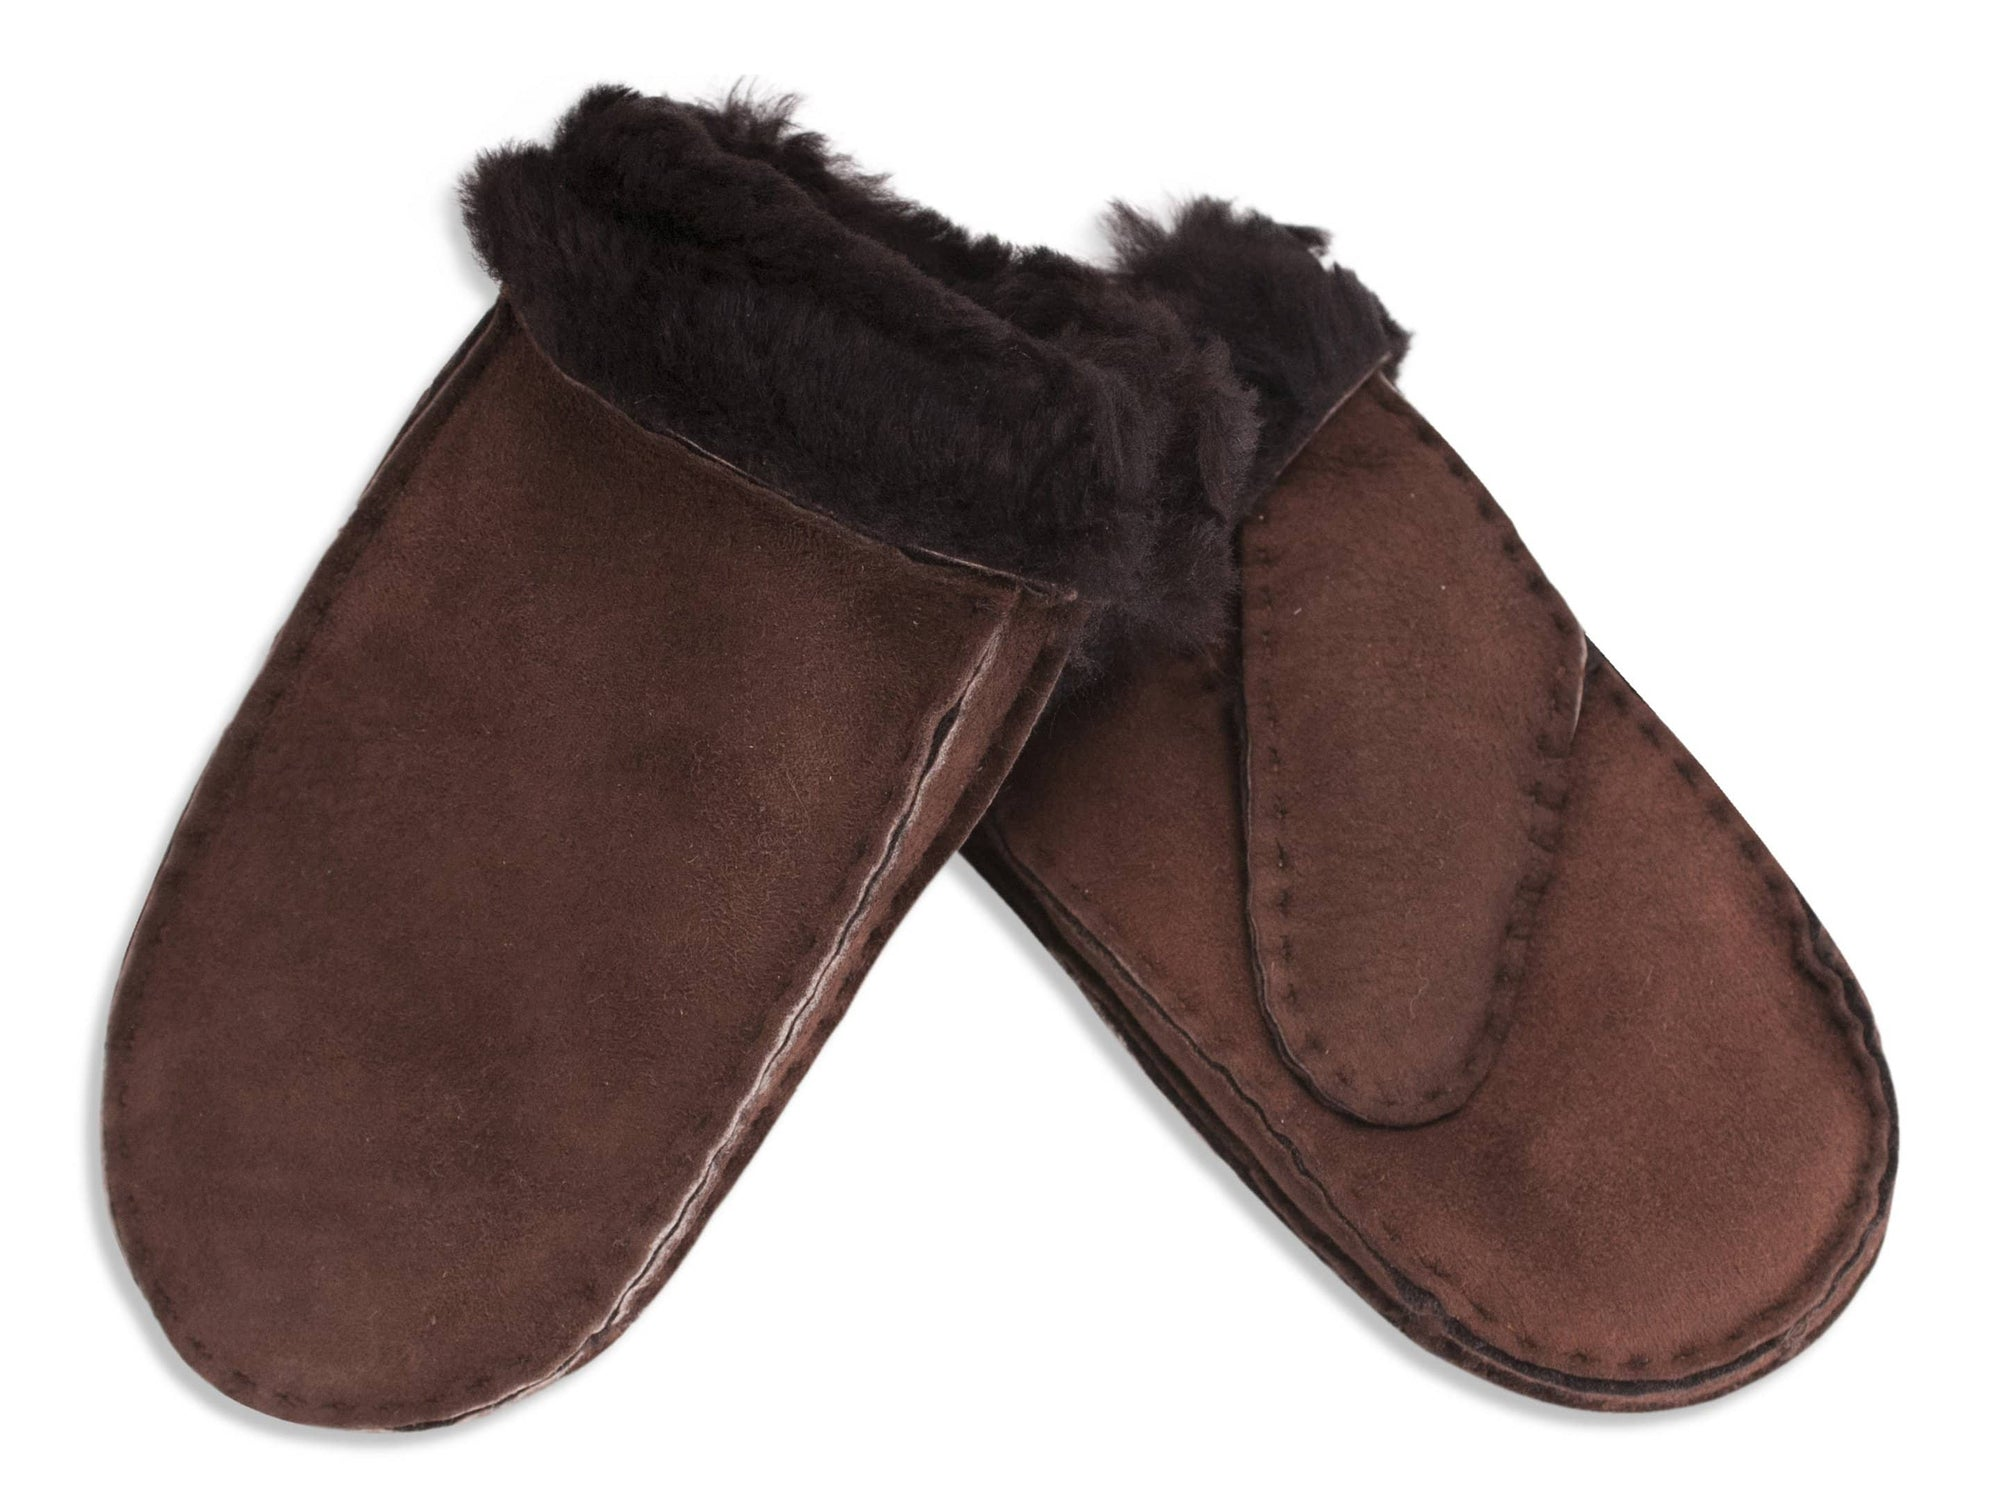 Nordvek childrens sheepskin mittens 314-100 stone pair